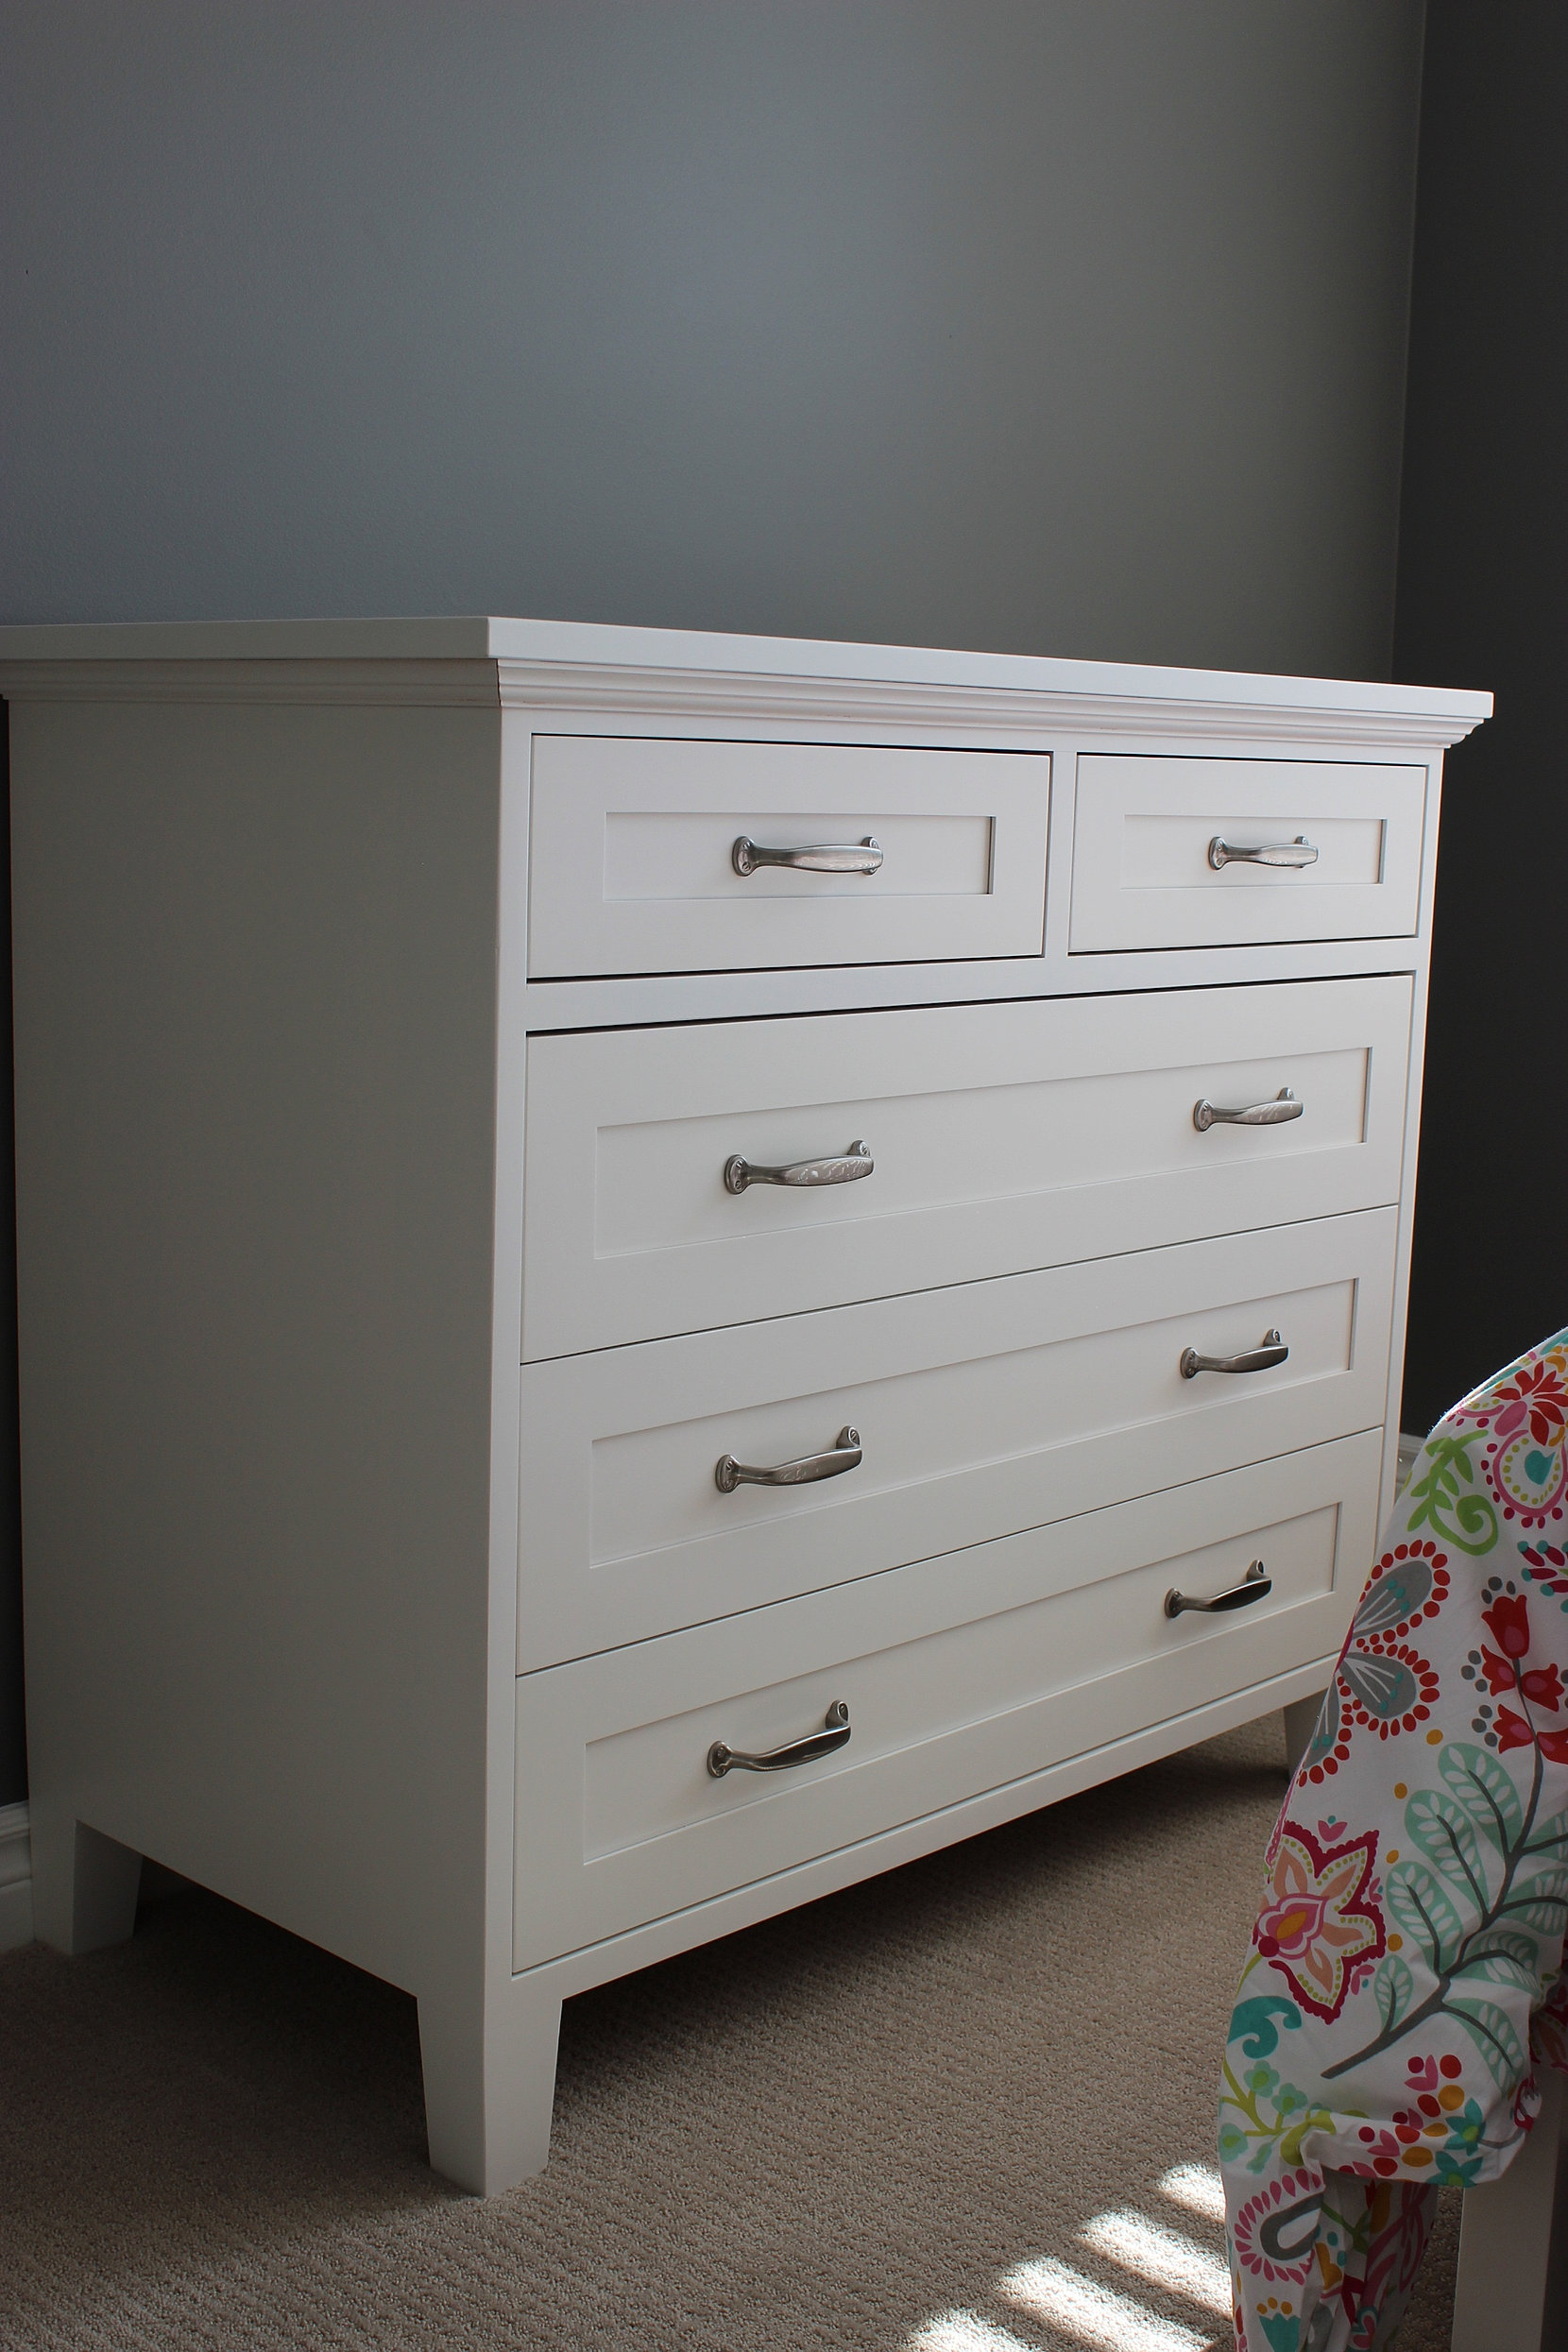 Mennonite Furniture Kitchener End Grain Cabinetry Co Waterloo And Kitchener Cabinet